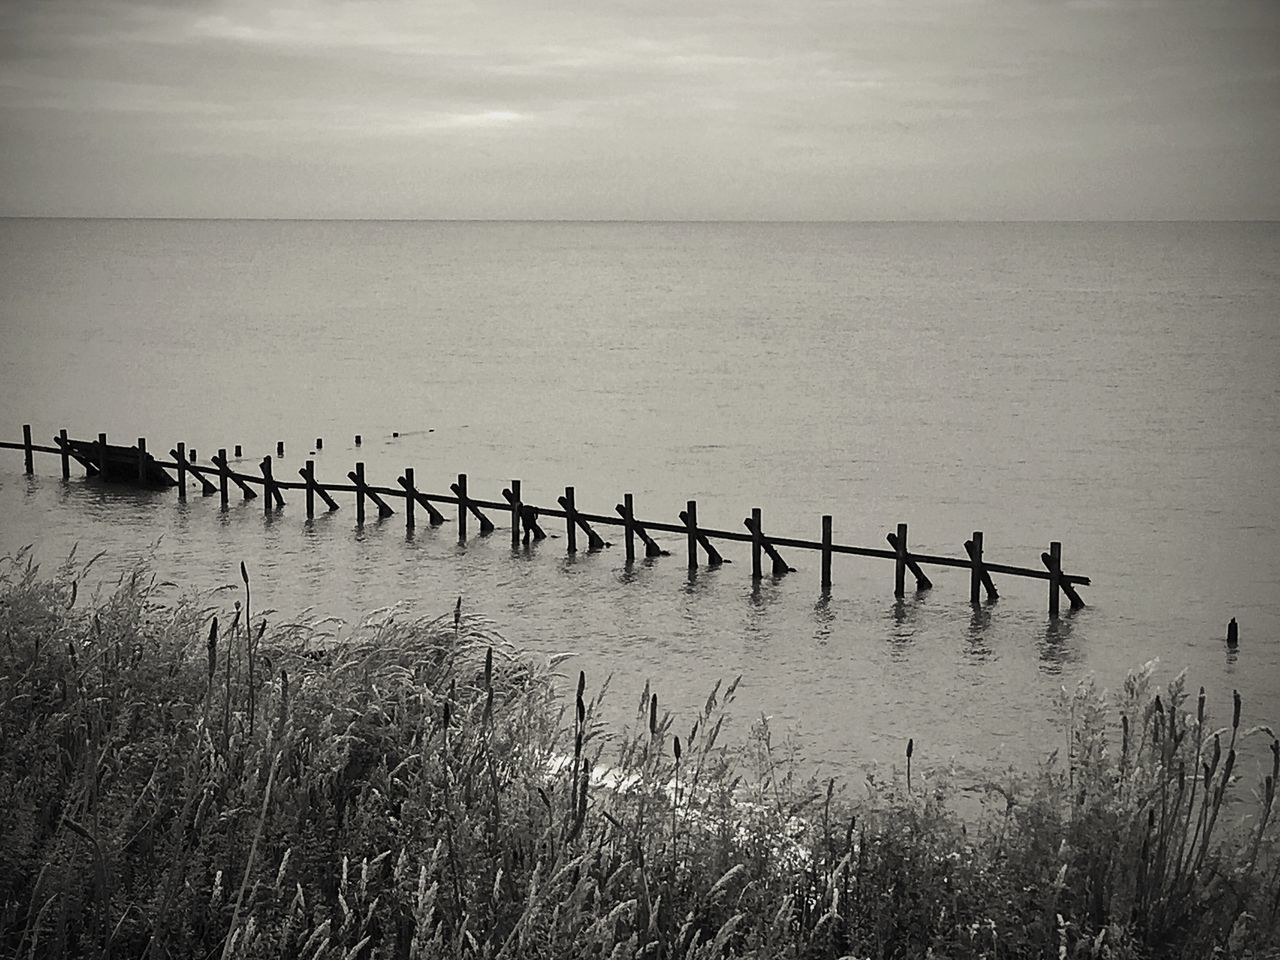 Beauty In Nature Horizon Over Water Seascape Standing Water Erosion Control Happisburgh Erosion Effects Shore Line Shoreline Coastal Defence Work Coastal Defences Coastal_collection Coastline Coastal Erosion Coastal Feature Beach Defence Erosion Beach Erosion Sea Defences Sea Defence EyeEm Best Shots - Black + White EyeEmBestPics Wooden Posts EyeEm Gallery EyeEm Best Shots - Landscape